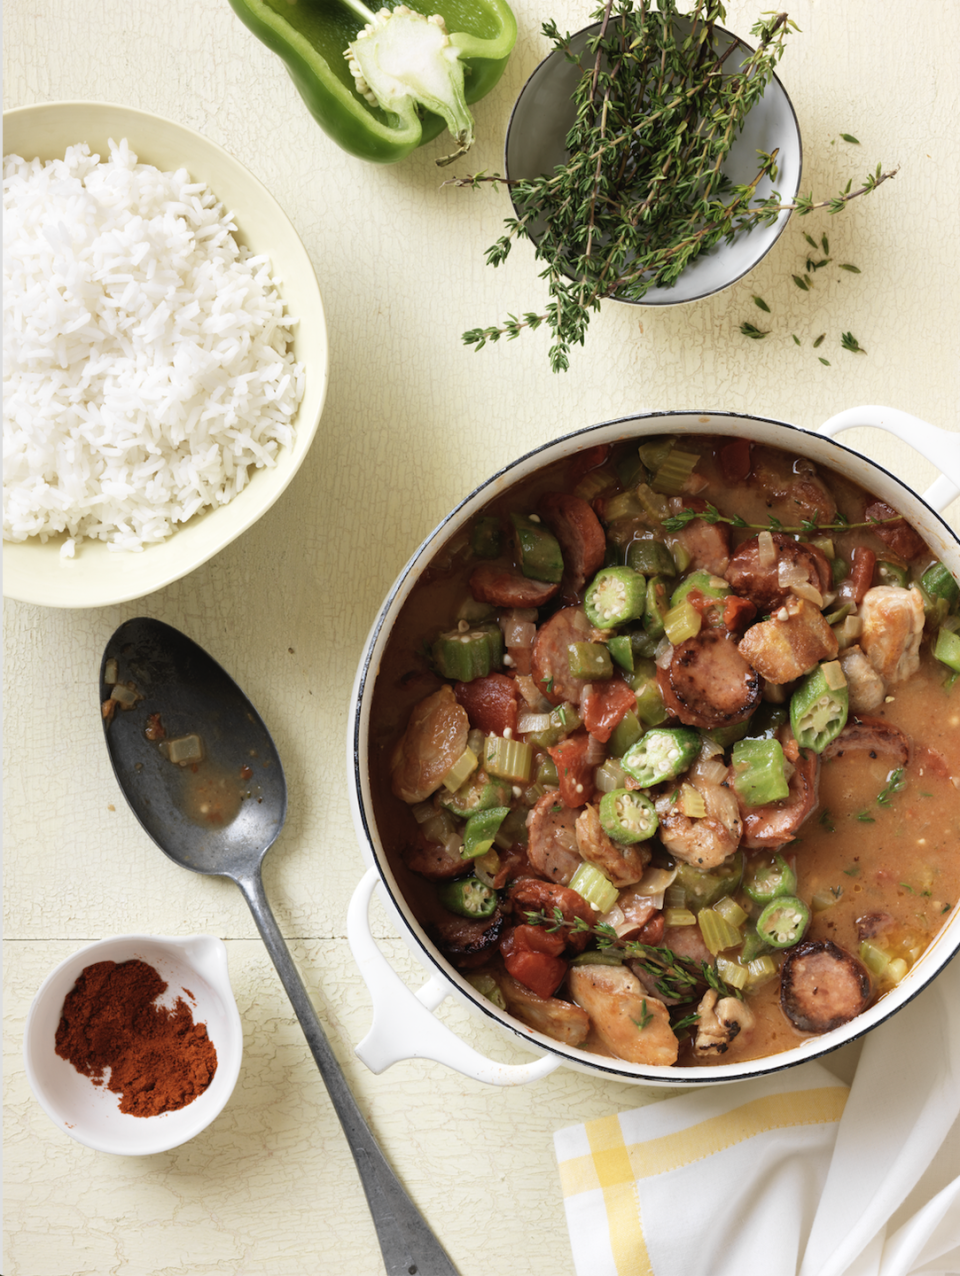 """<p>The official dish of Louisiana, Gumbo generally consists of meat or shellfish, a thickener like flour and veggies. Our hearty version uses chicken and sausage.</p><p><em><a href=""""https://www.womansday.com/food-recipes/food-drinks/recipes/a11687/gumbo-recipe-wdy1012/"""" rel=""""nofollow noopener"""" target=""""_blank"""" data-ylk=""""slk:Get the recipe from Woman's Day »"""" class=""""link rapid-noclick-resp"""">Get the recipe from Woman's Day »</a></em></p>"""